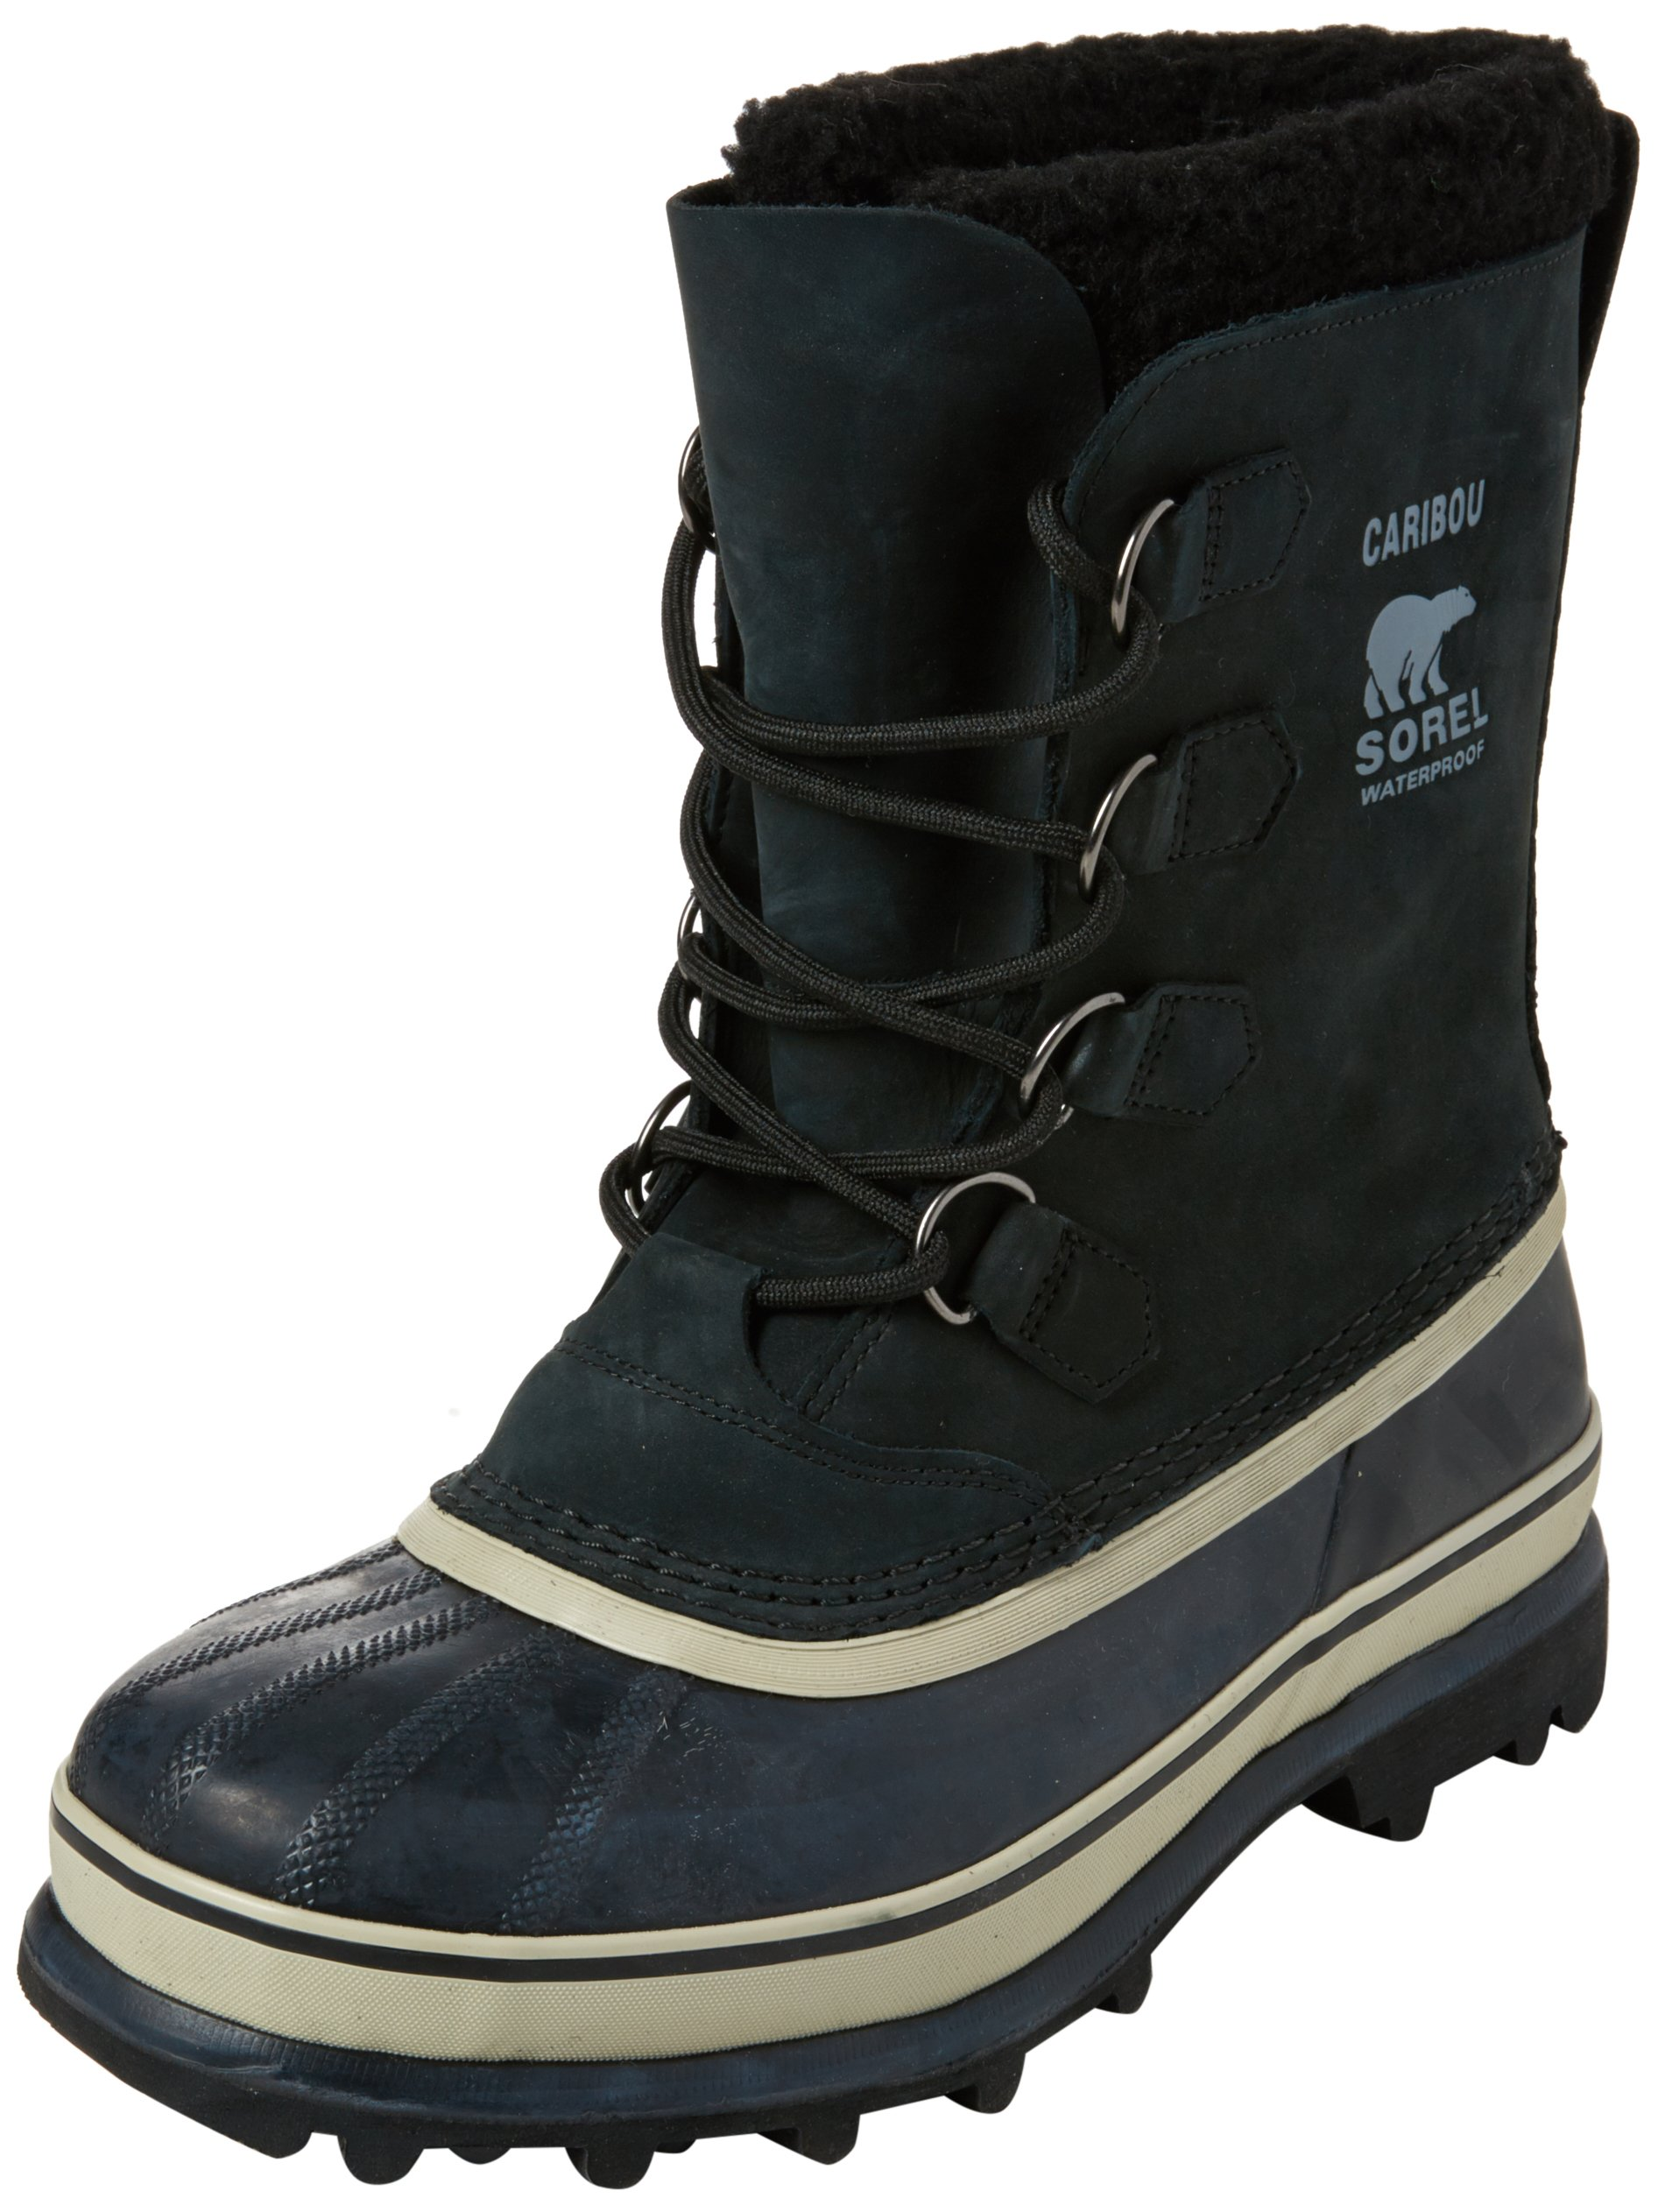 SOREL Men's Caribou NM1000 Boot,Black/Tusk,8 M by SOREL